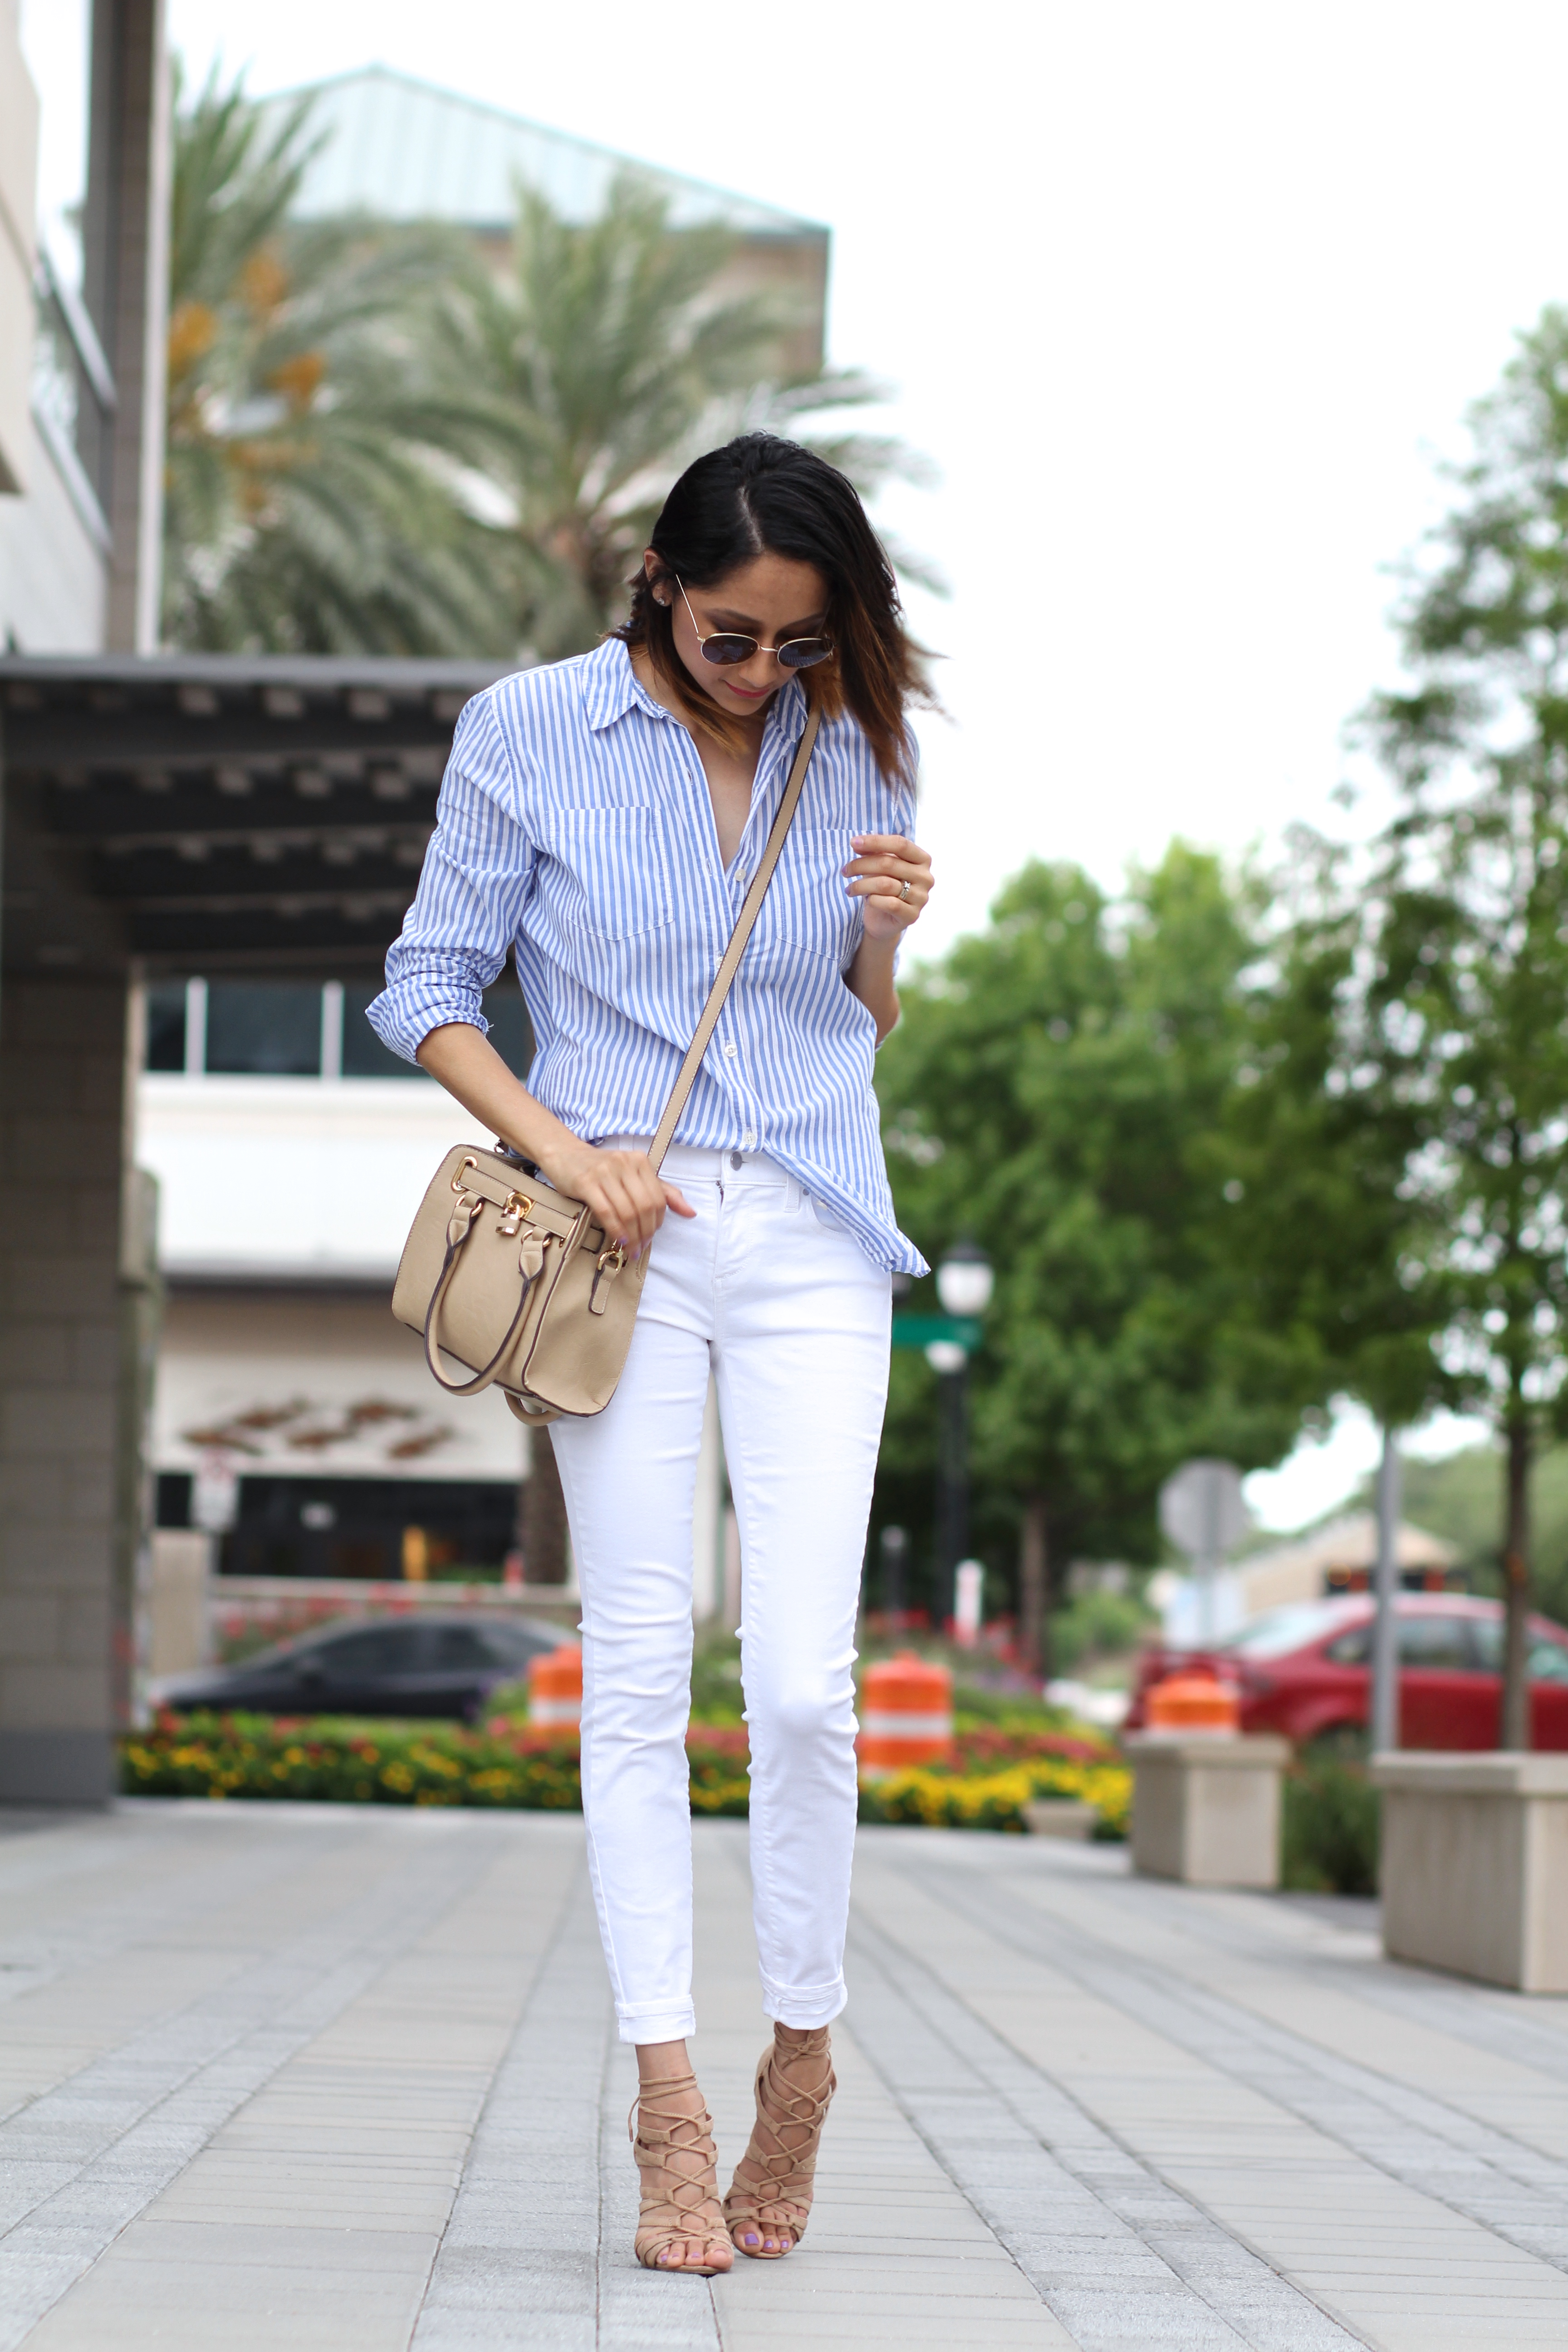 Vertical Stripes For Summer | White Denim | Casual Summer Look